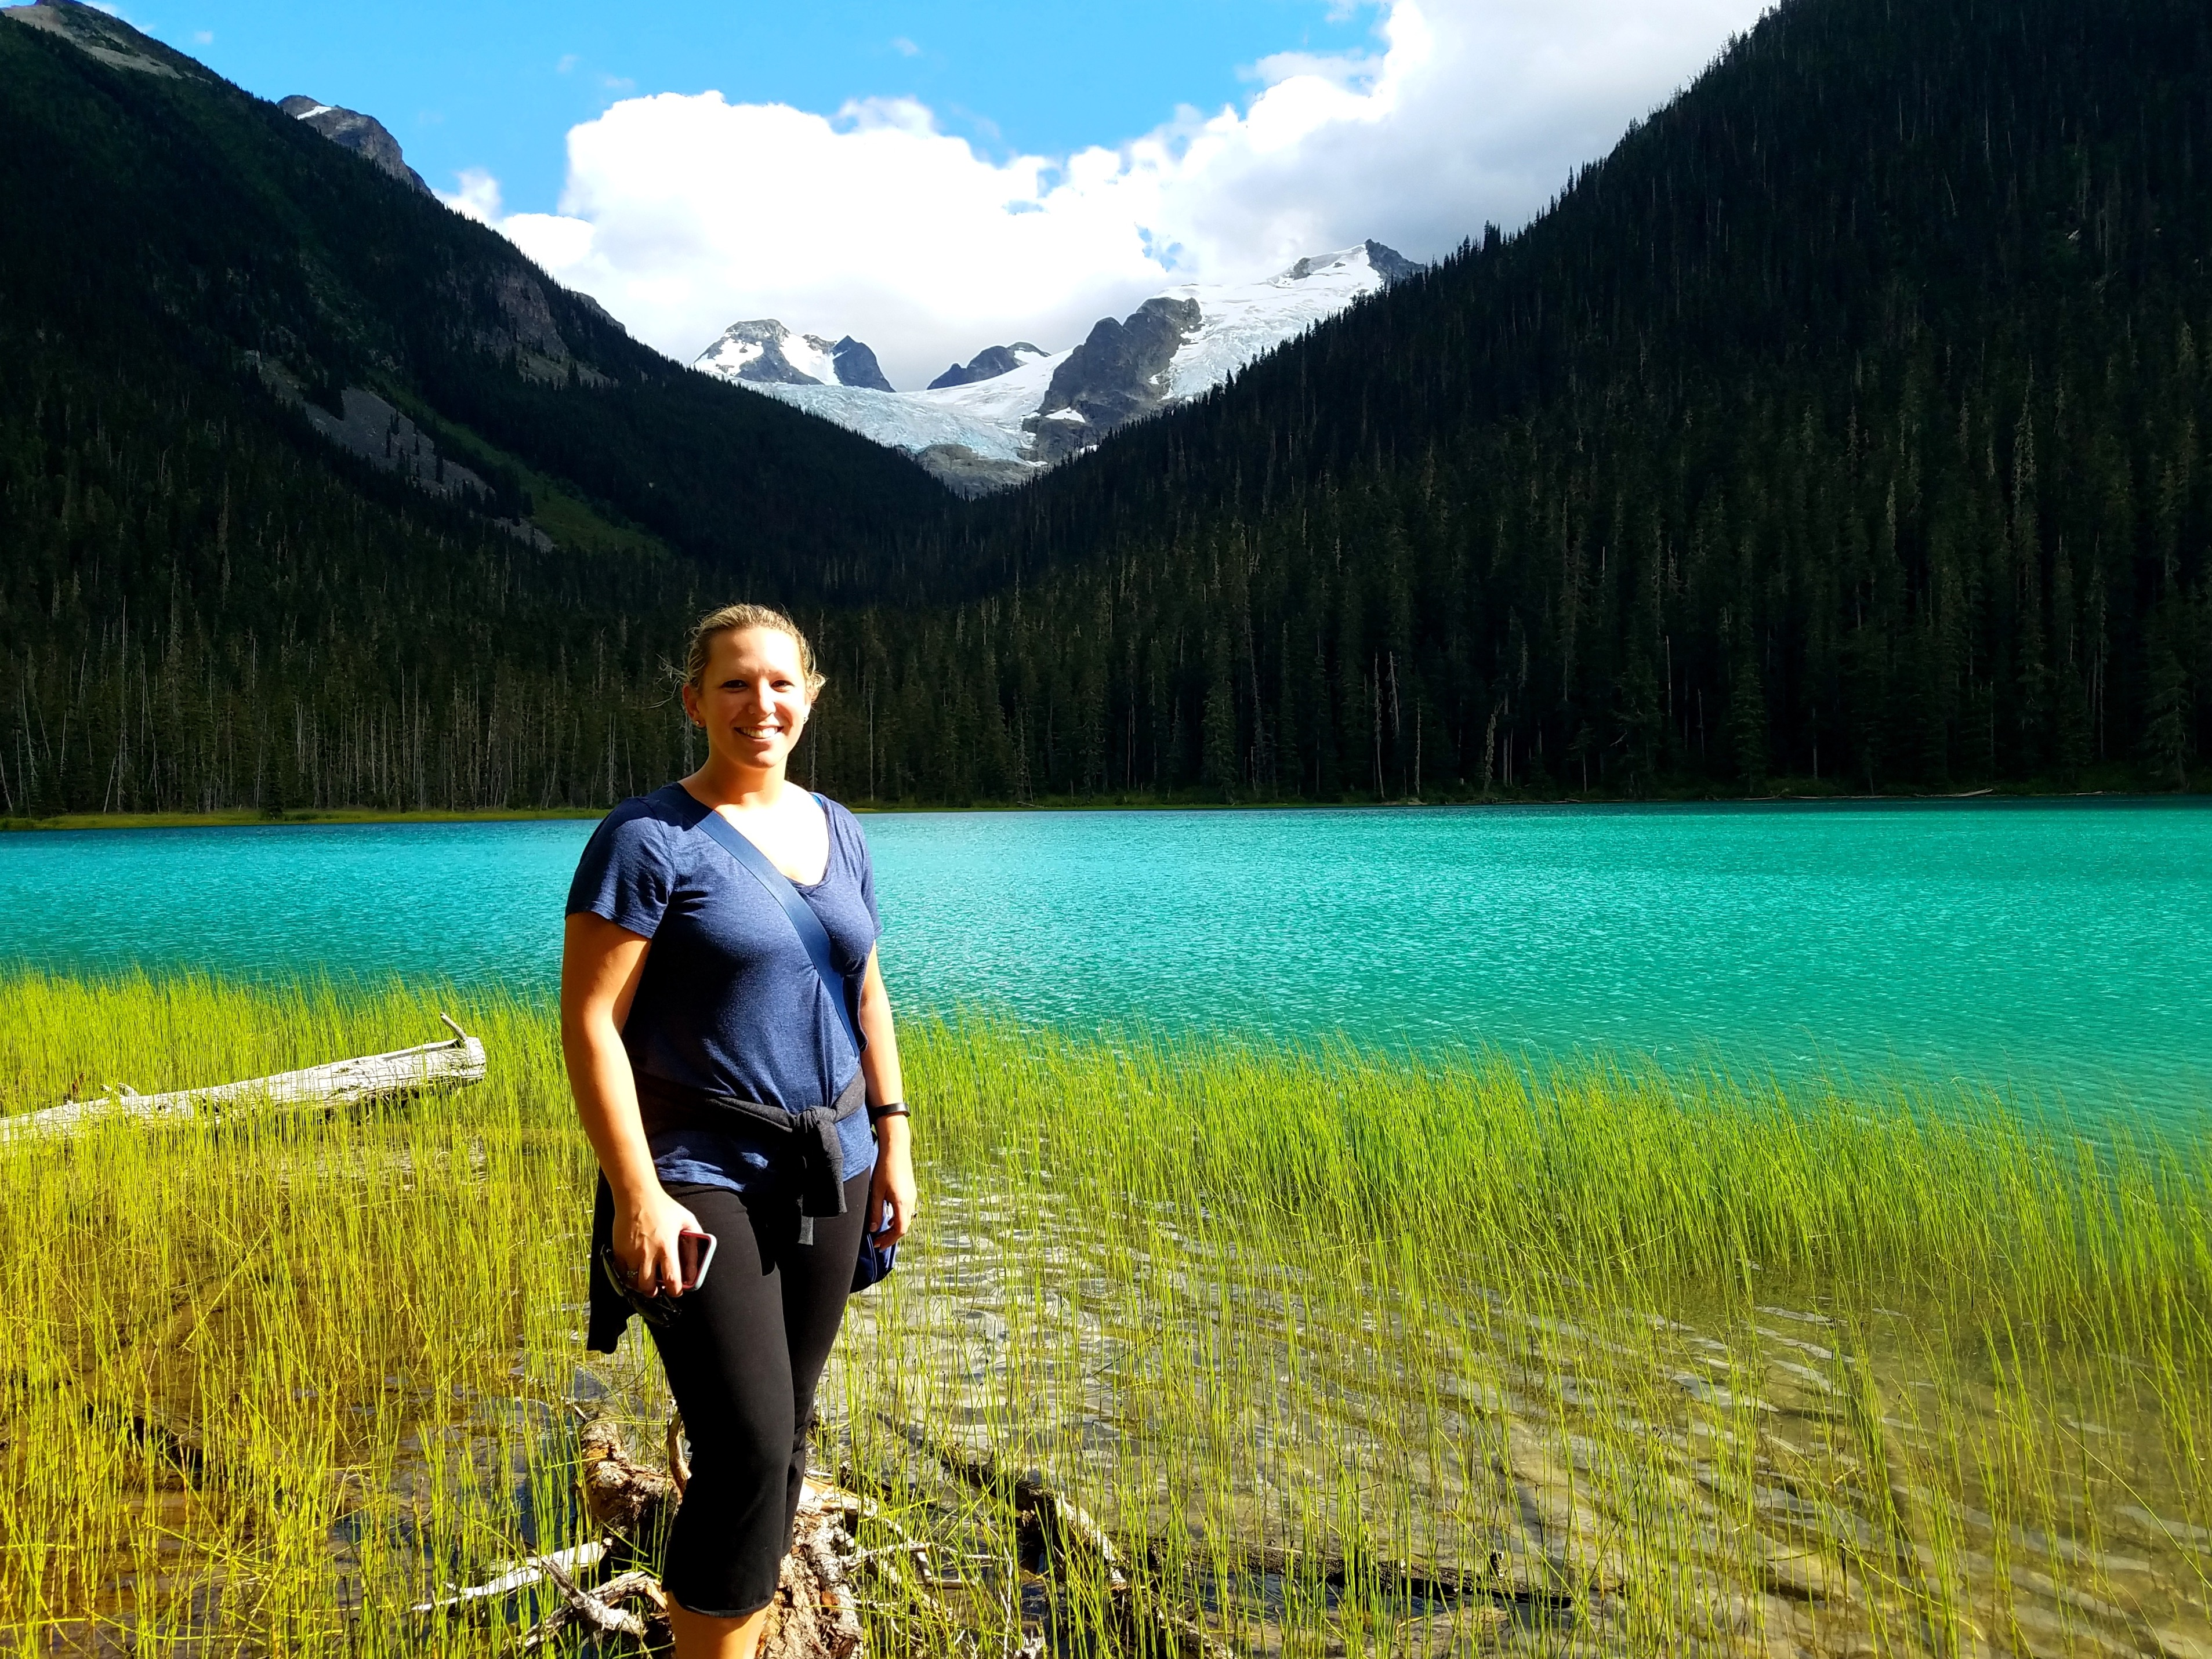 Pictures can't do justice to Joffre Lakes' unreal colors...this is a can't-miss part of any Sea-to-Sky Highway route